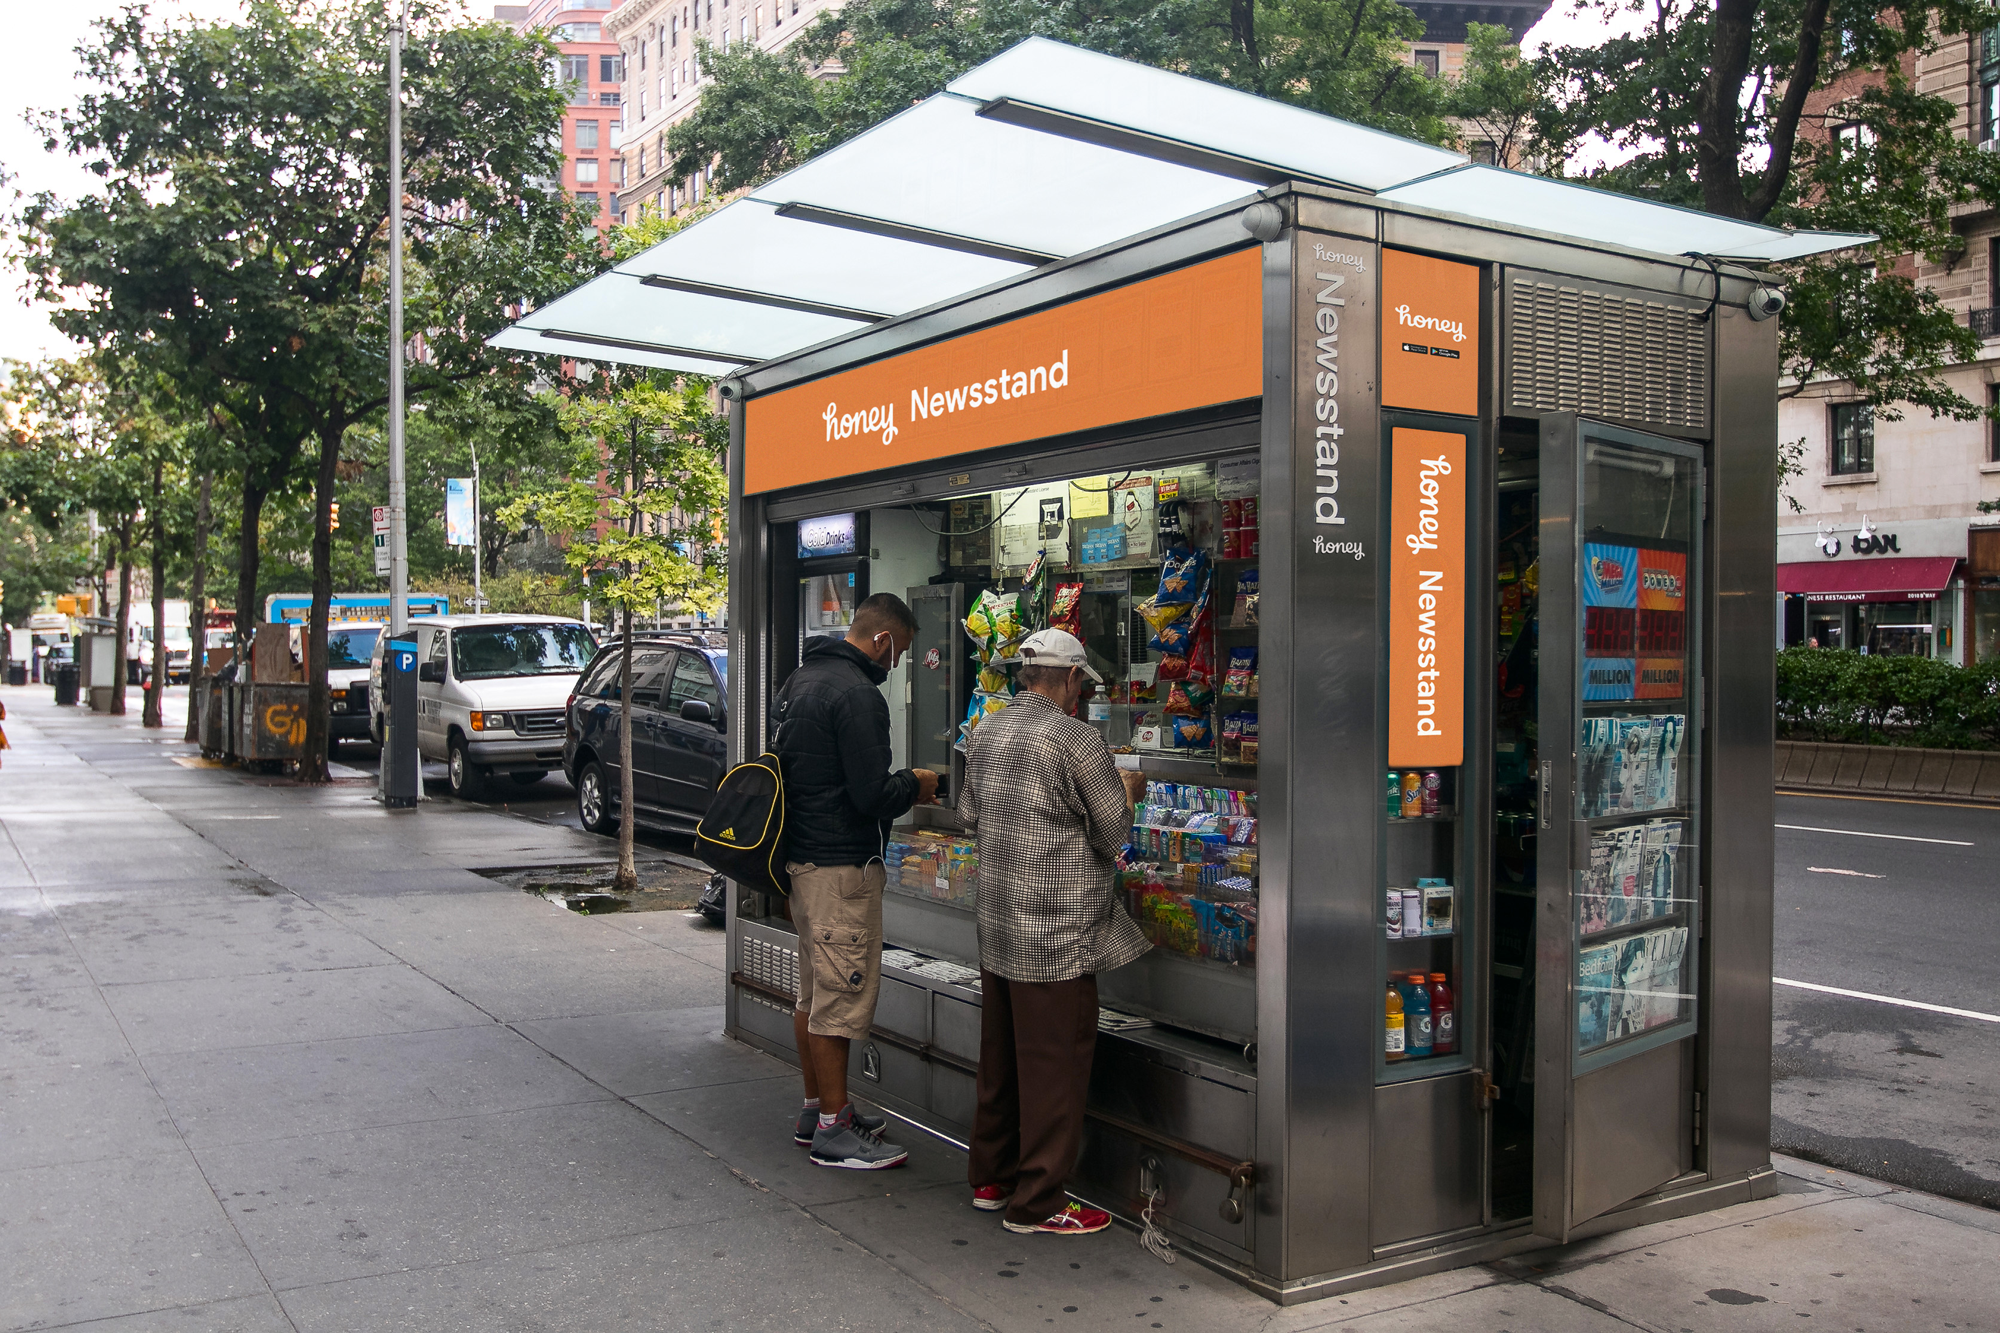 The campaign will focus on finding money in unexpected places. We'll kick it off by planting a Honey-branded news stand in New York City, which will allow us to control the experience.